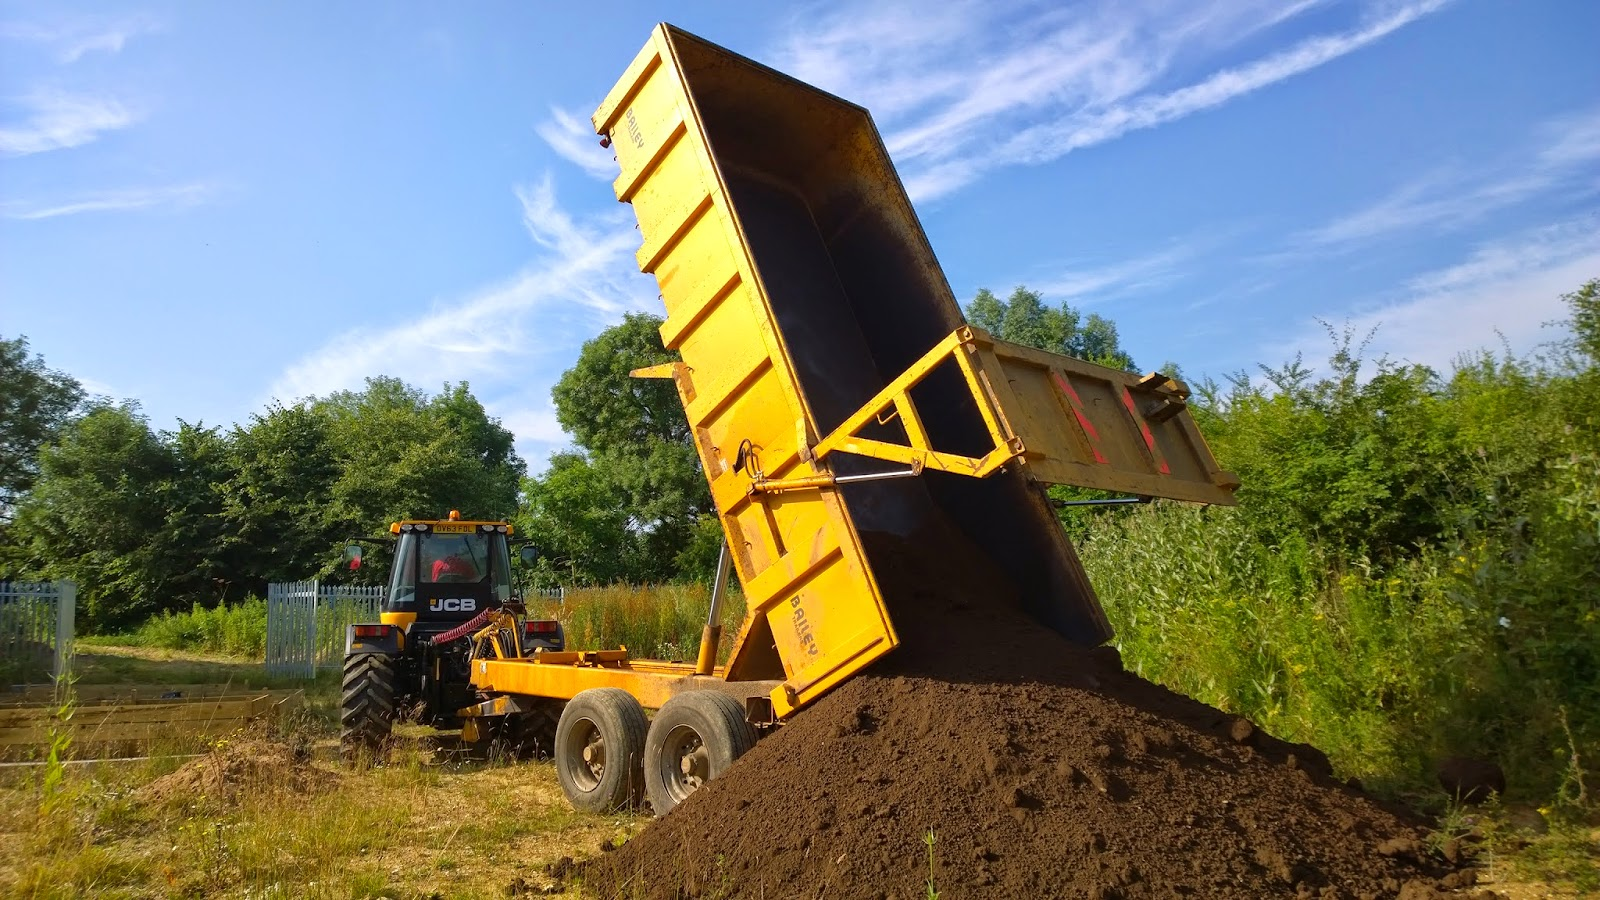 Melton community allotment project topsoil delivery for Topsoil delivery